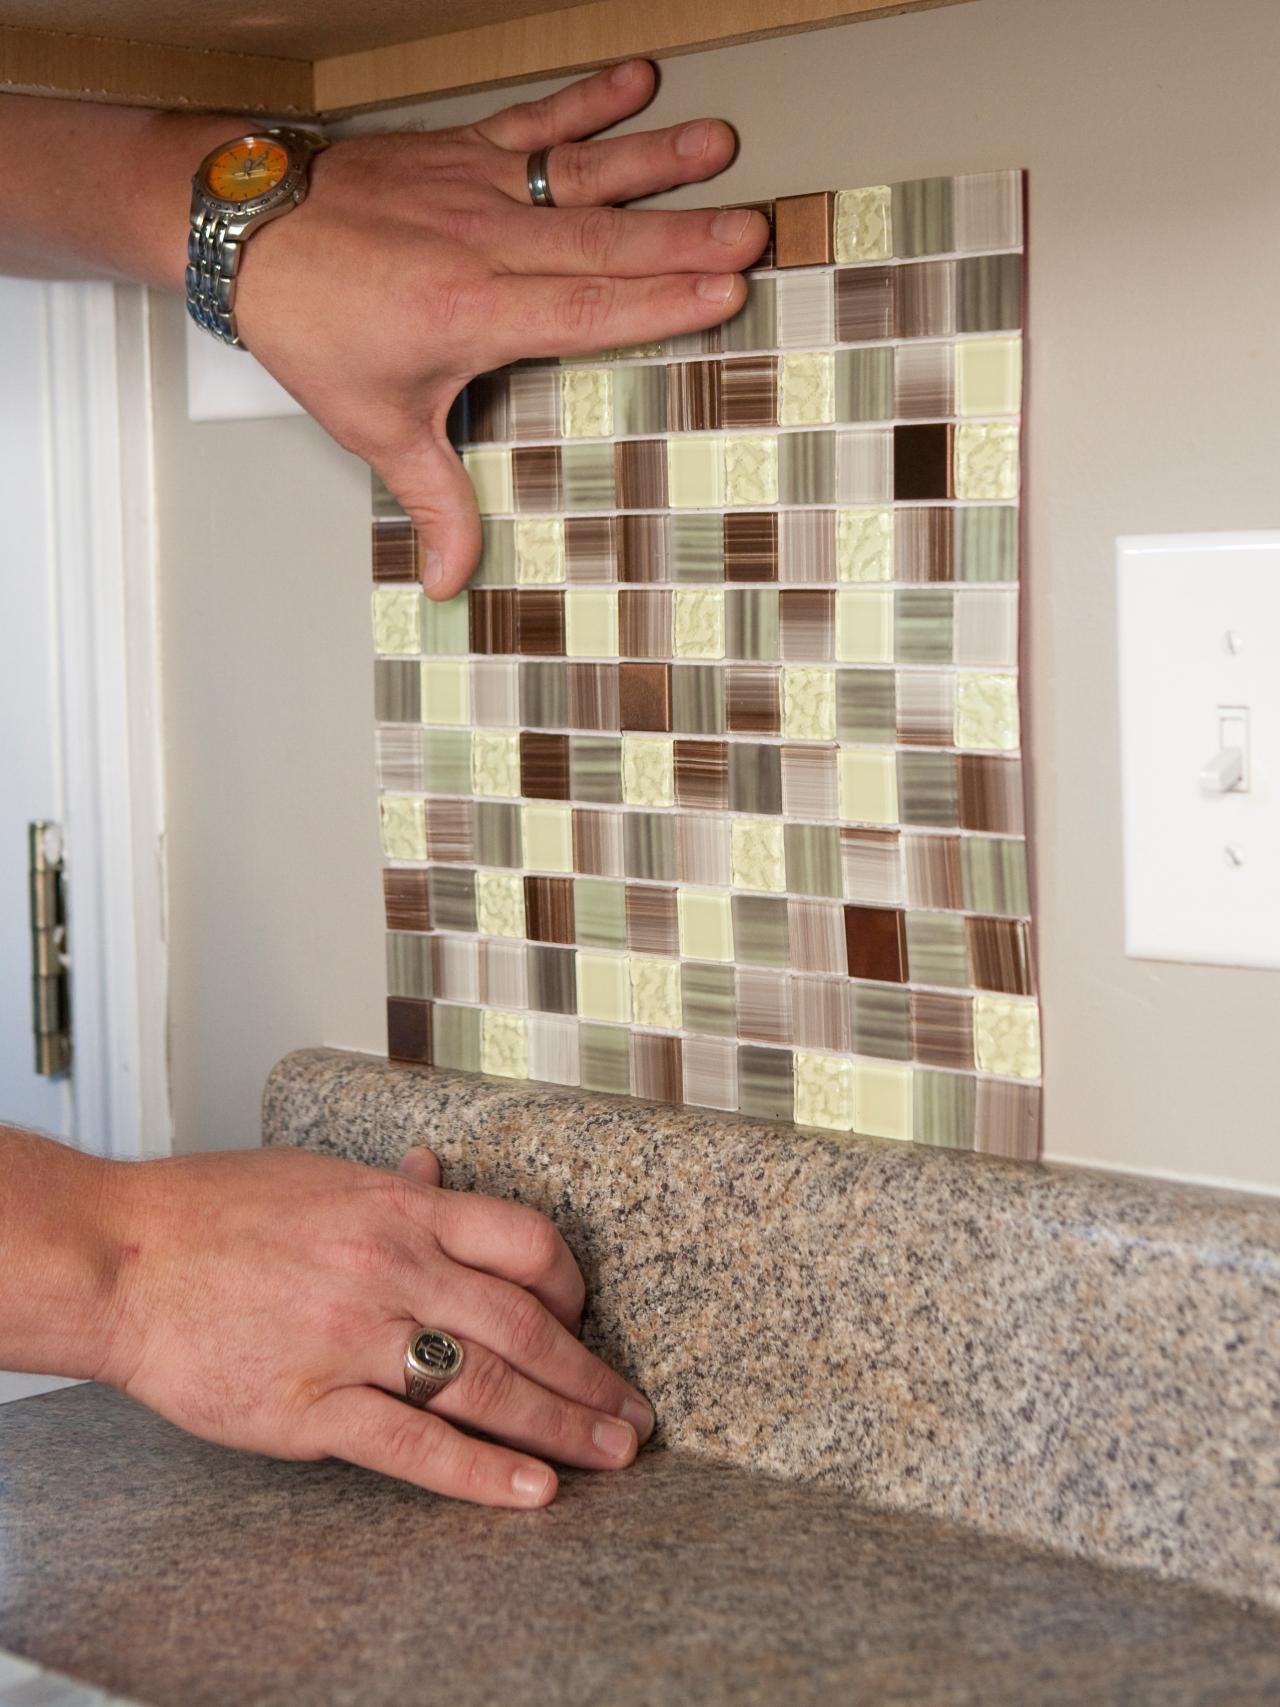 How to install a backsplash how tos diy originaldiy tile s5 cutting tiles 0056s3x4 dailygadgetfo Image collections